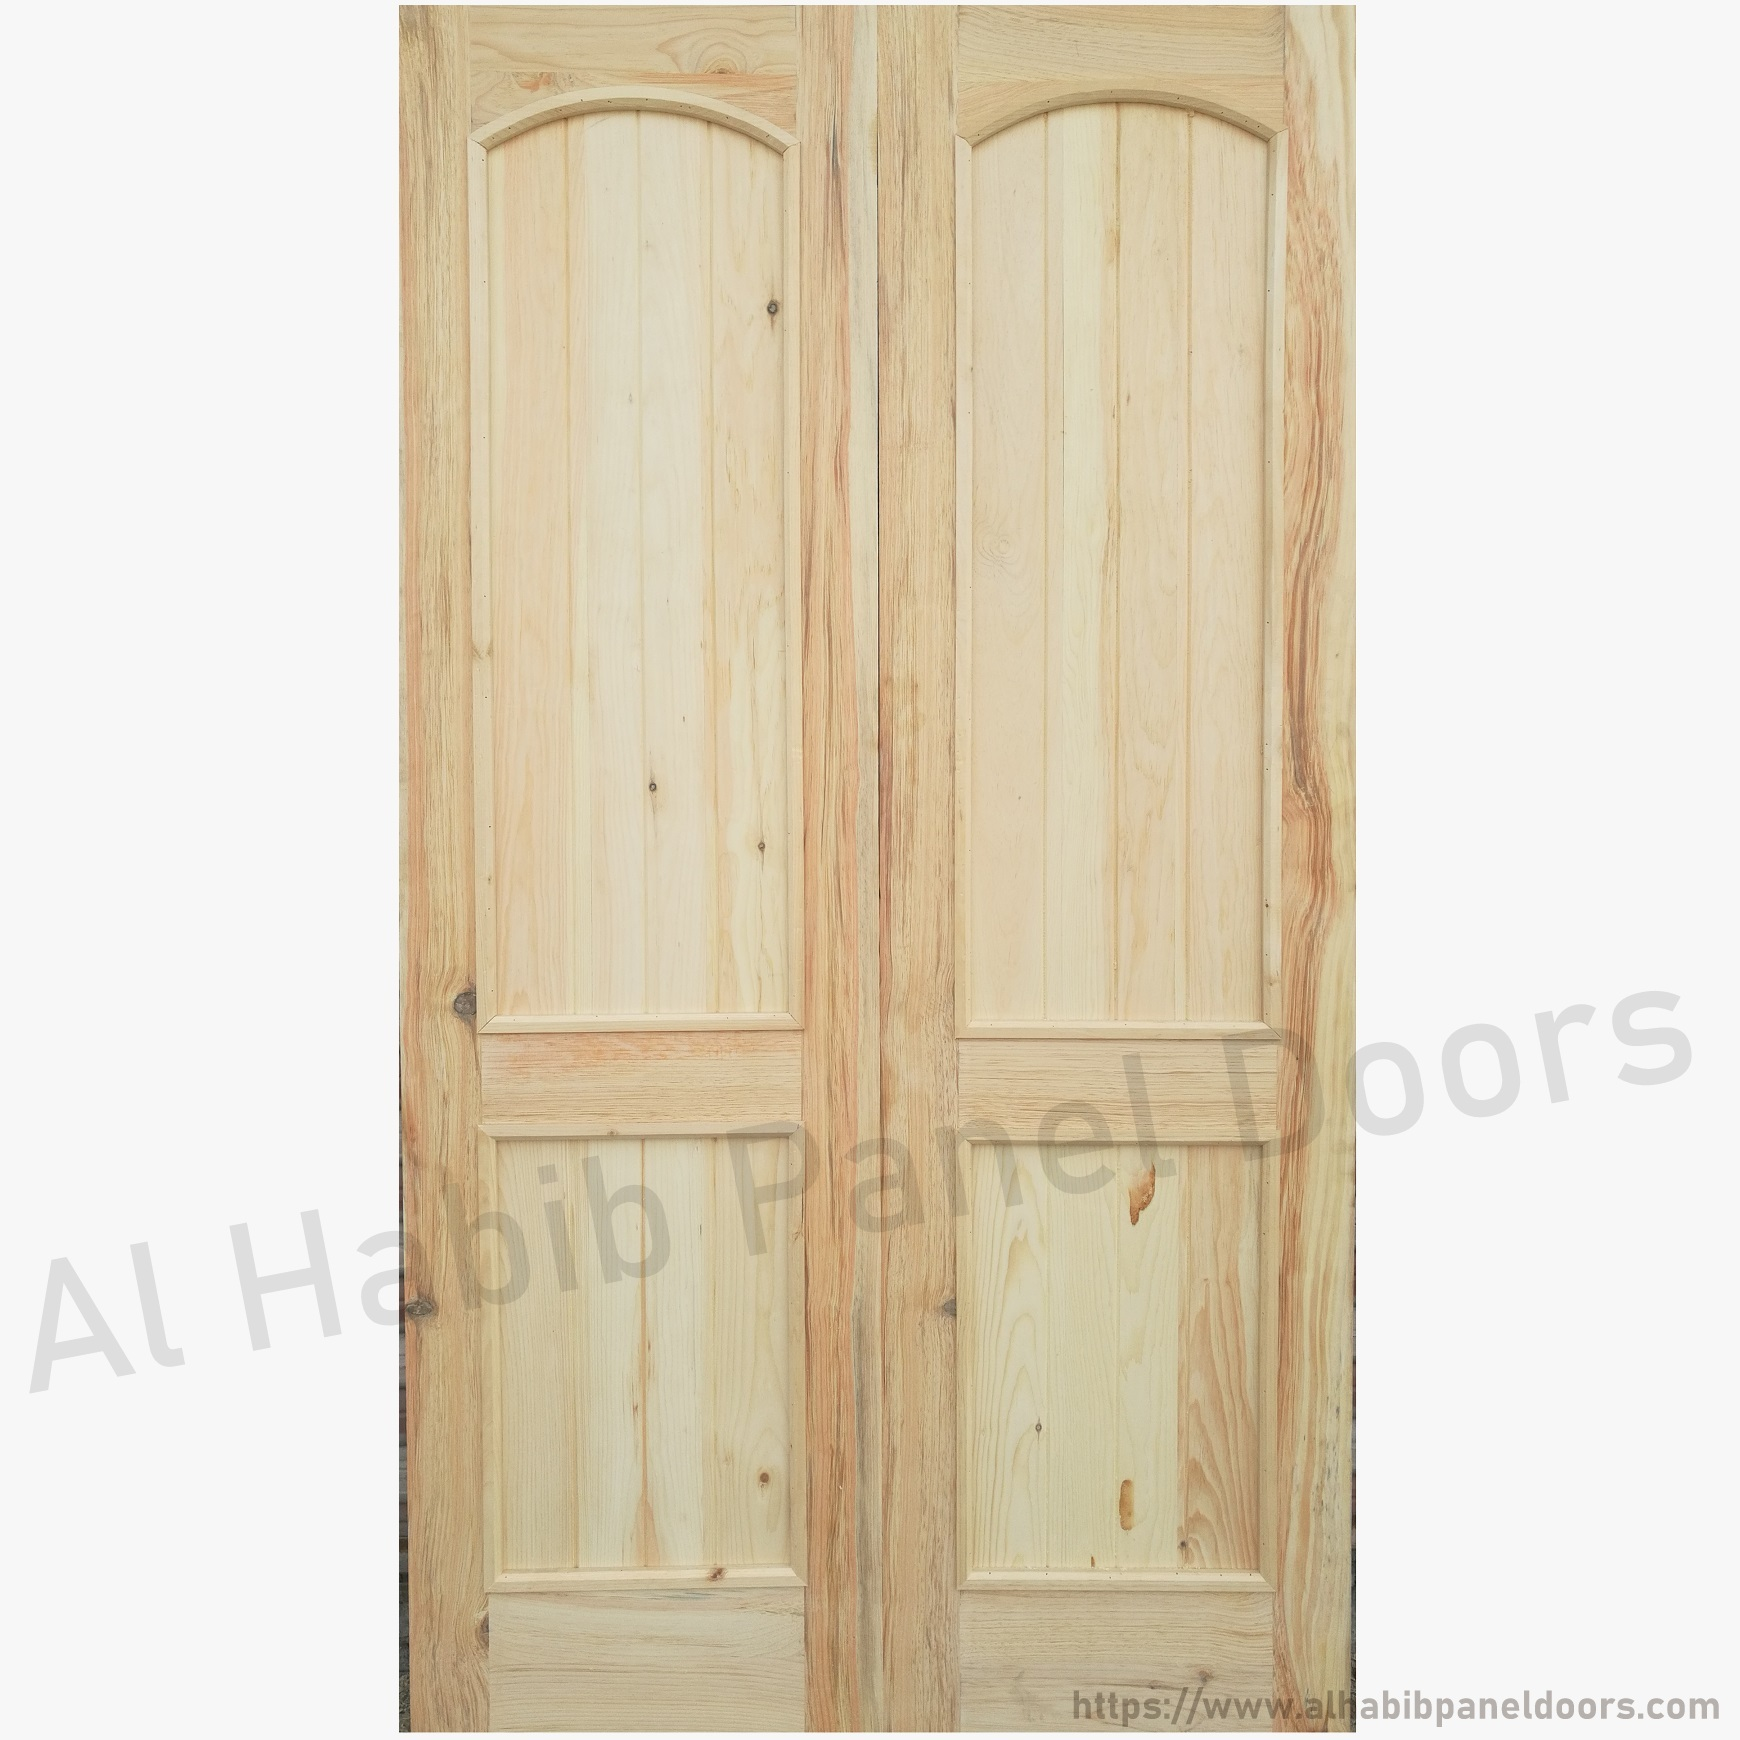 Main doors doors al habib panel doors for Main door design images